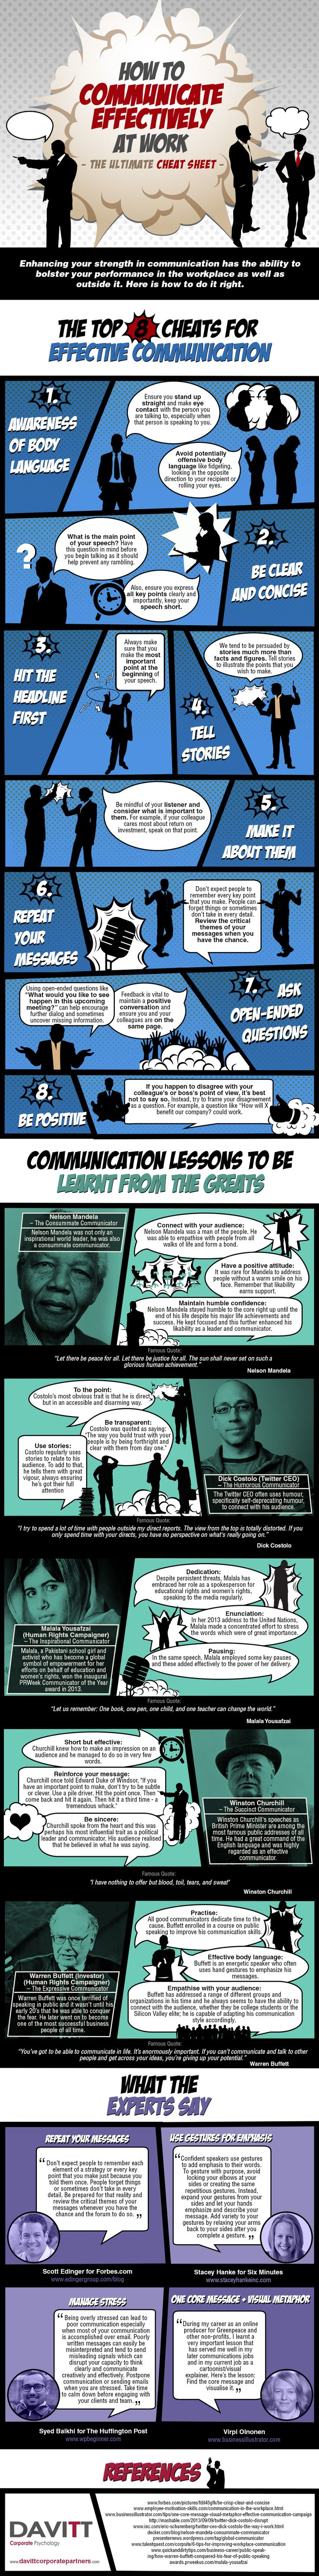 best ideas about communication studies choosing how to communicate effectively at work infographic theundercoverrecruiter com